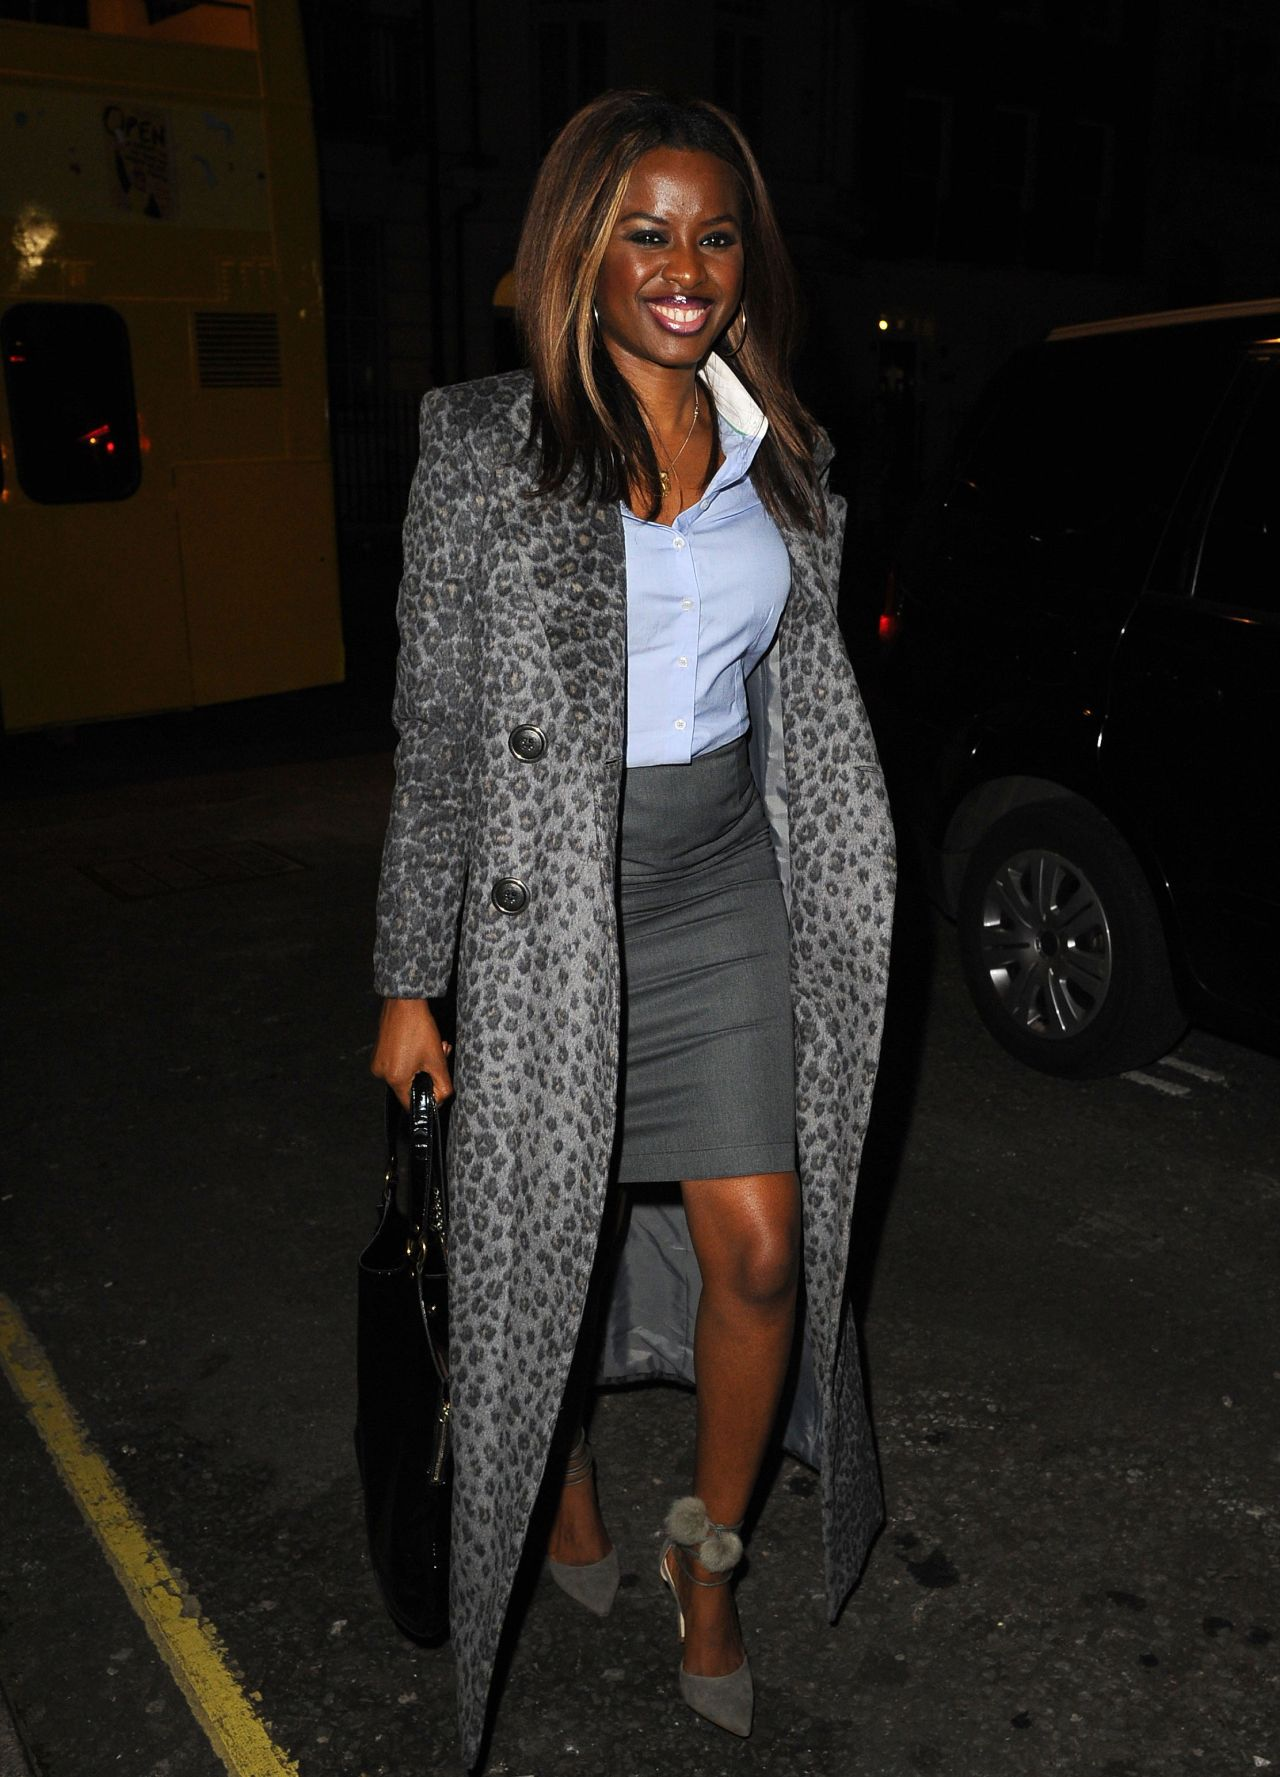 June Sarpong At Women S University Club In London 3 10 2017